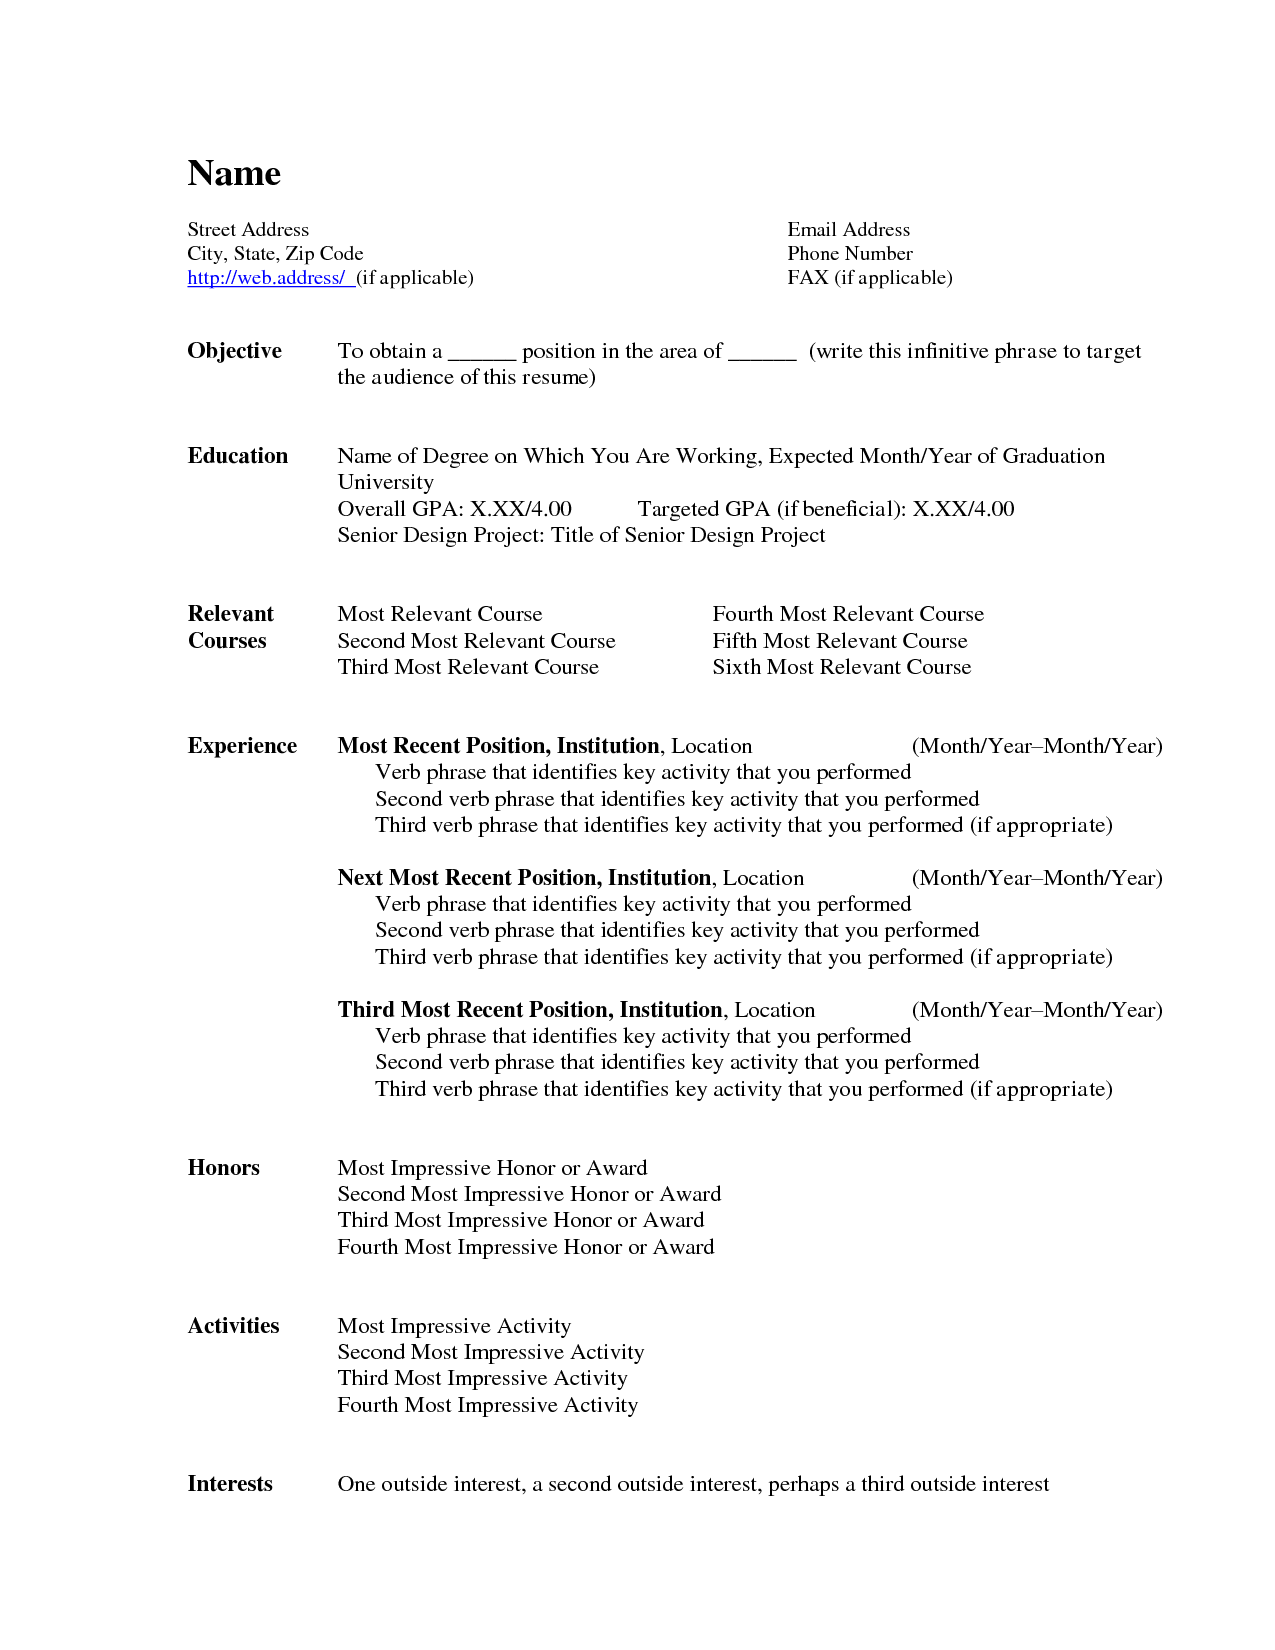 microsoft word resume template builder http job - Resume Examples Word